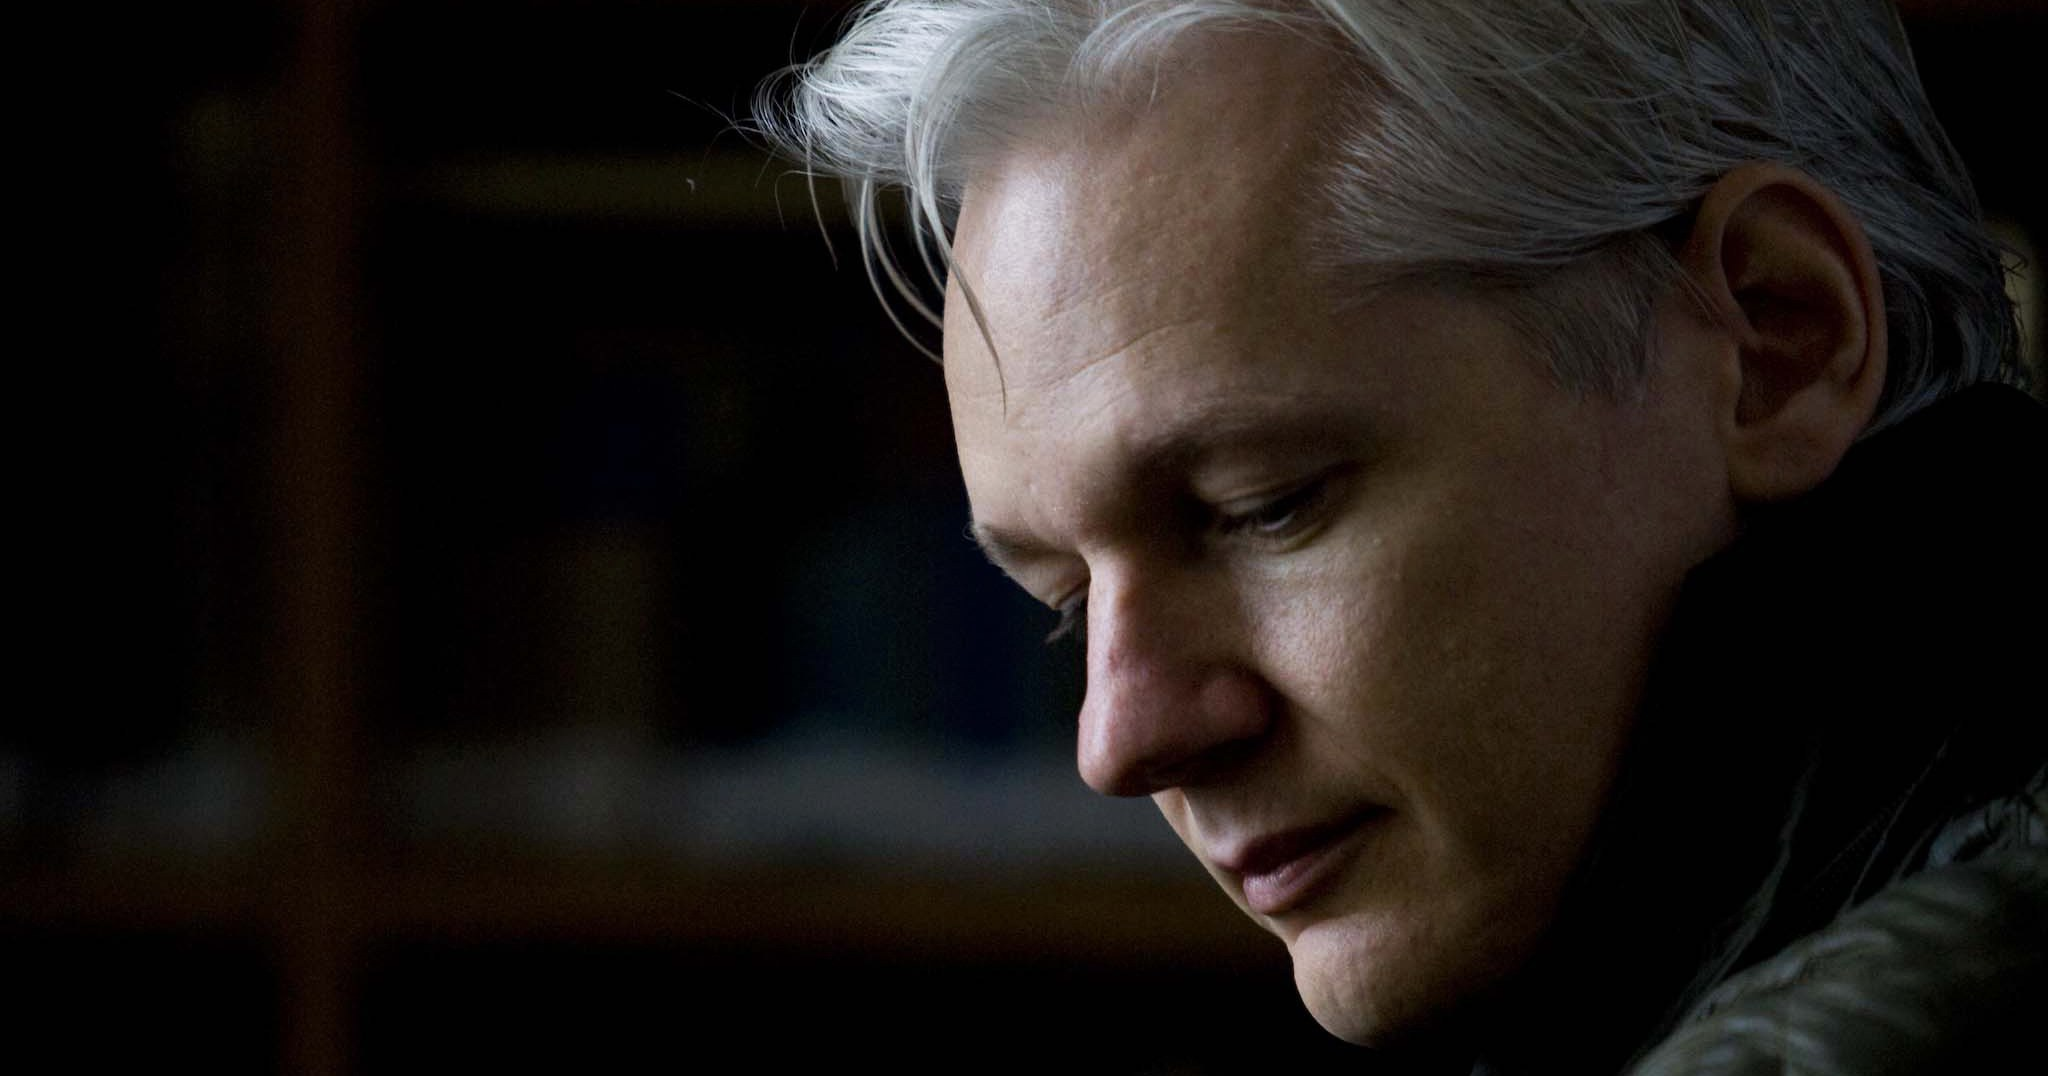 """Do not dare to encroach on secrets"": will Assange pay for the crimes of Western elites?"